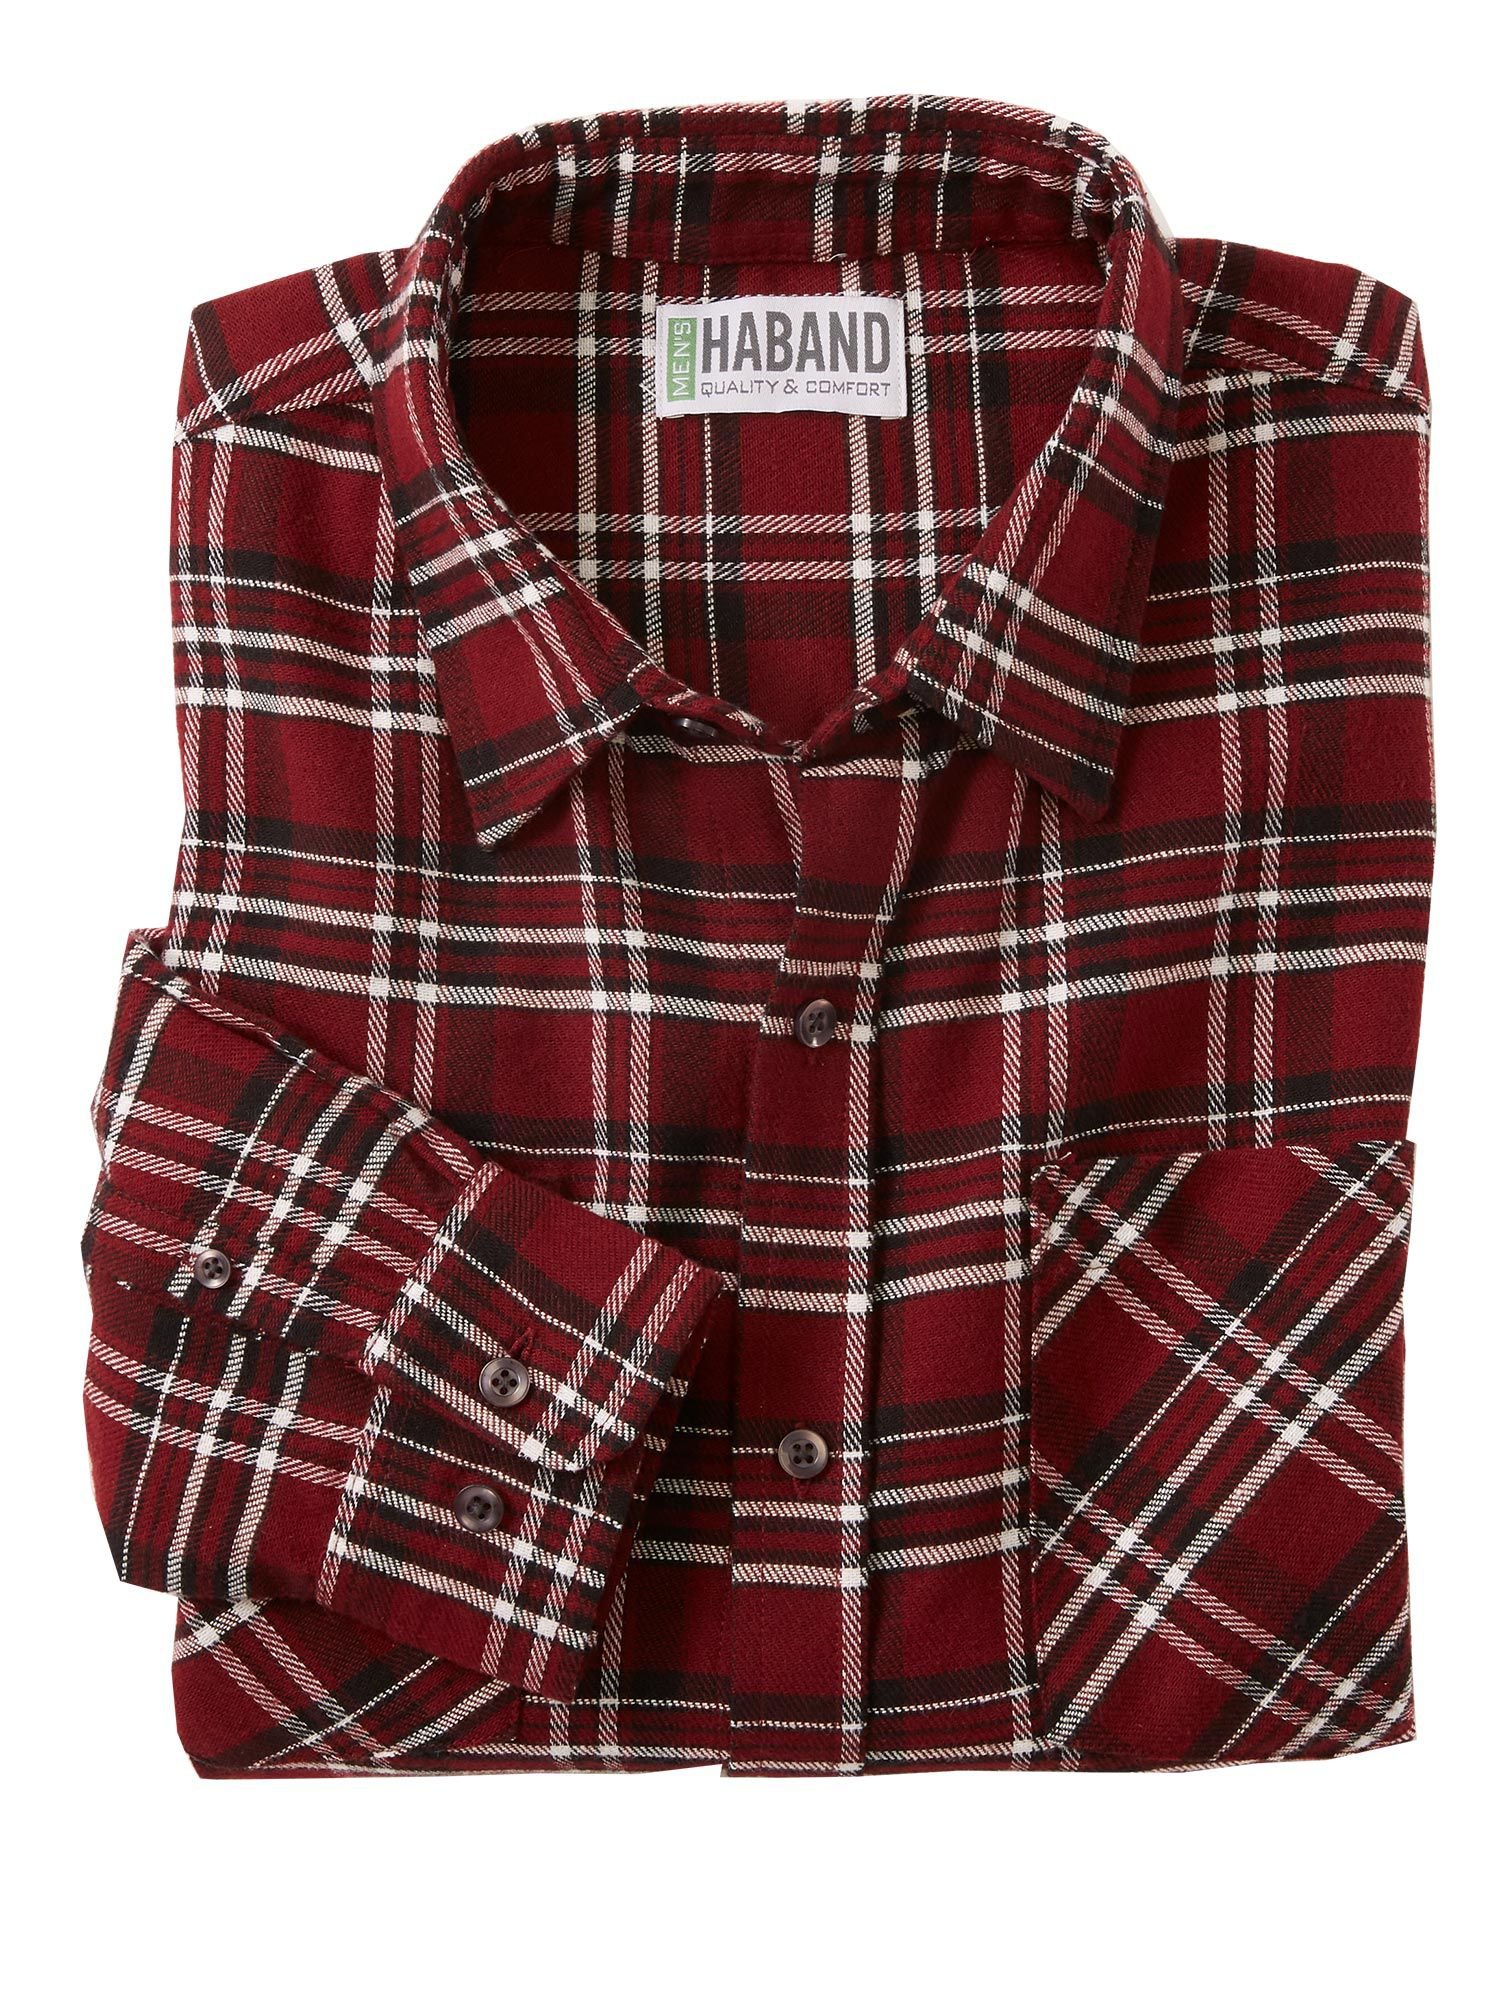 Haband Soft Brushed Flannel Shirt